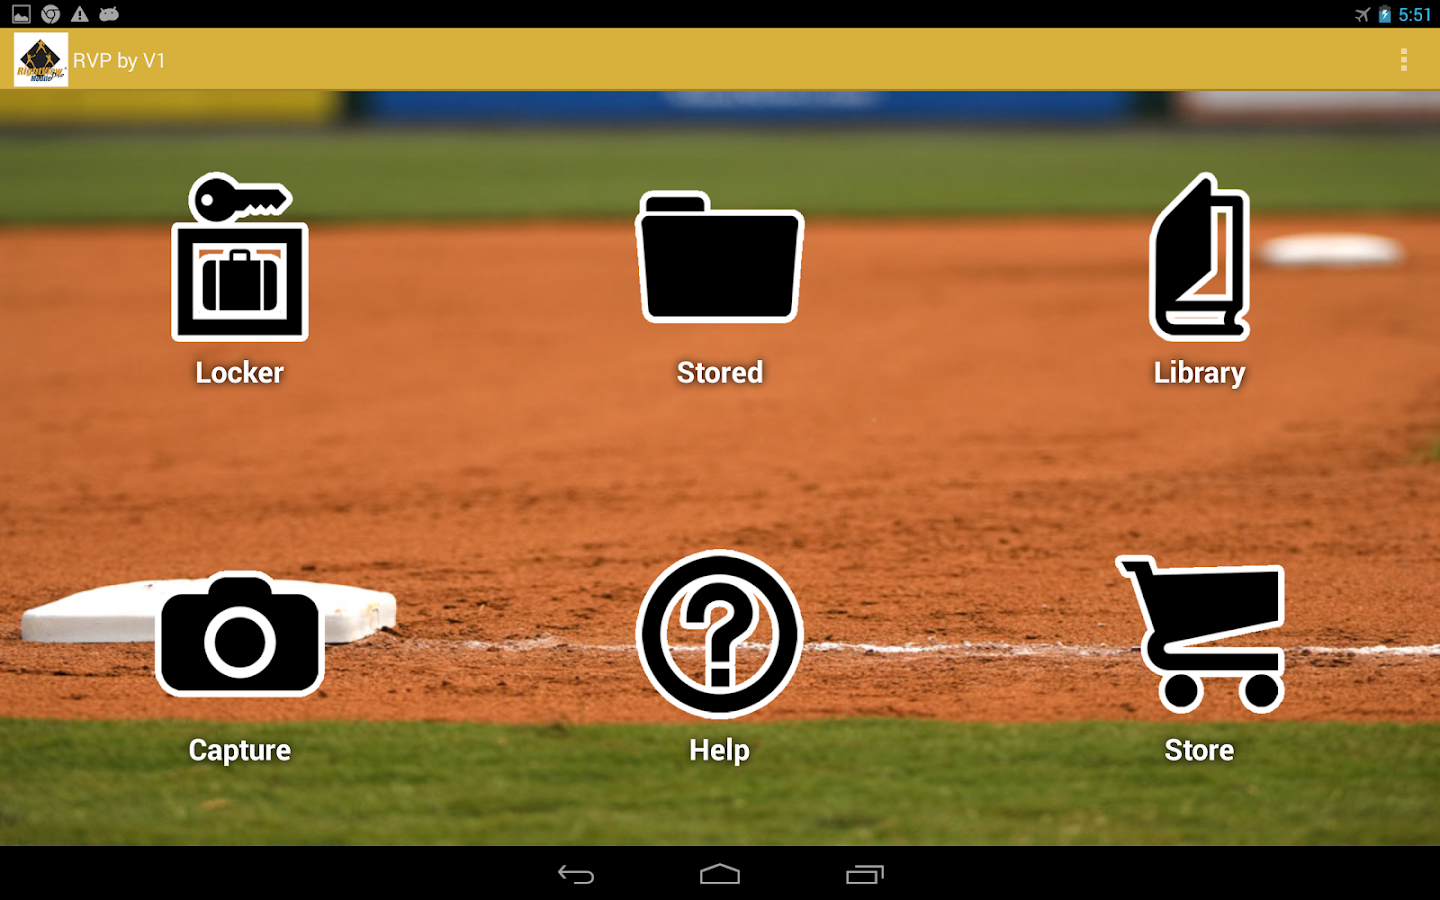 RVP:Baseball & Softball video - screenshot